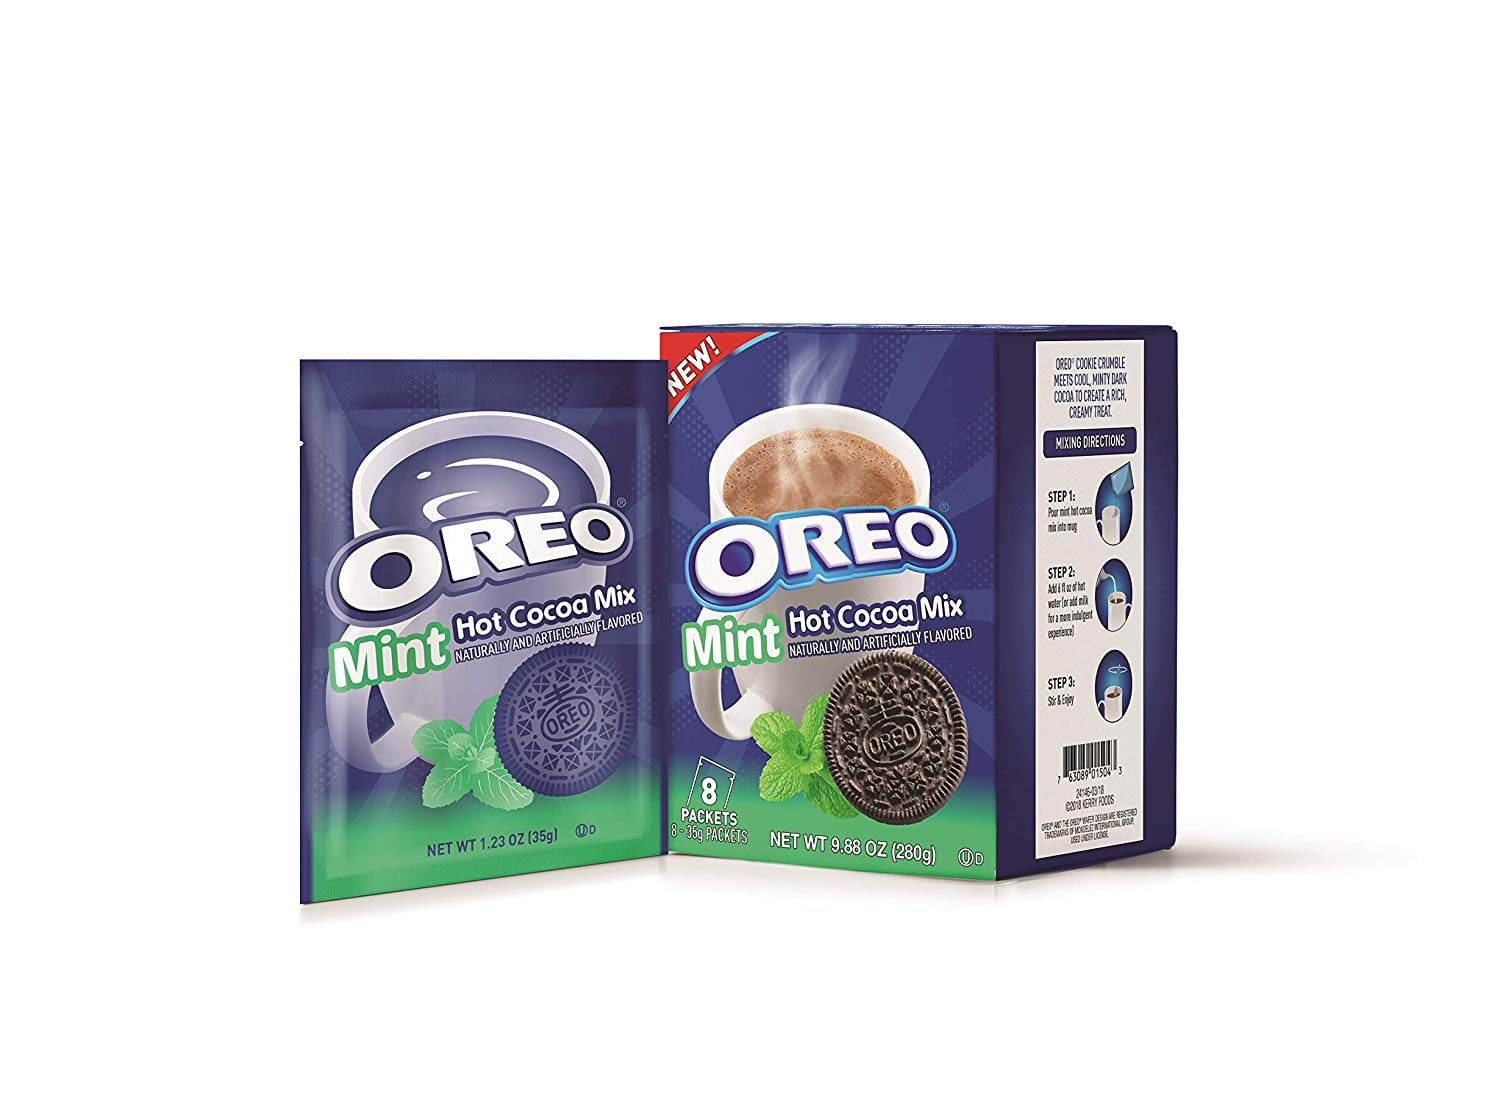 Oreo Mint Hot Chocolate Is Everything Our Cozy Nights Were Missing 1143514490